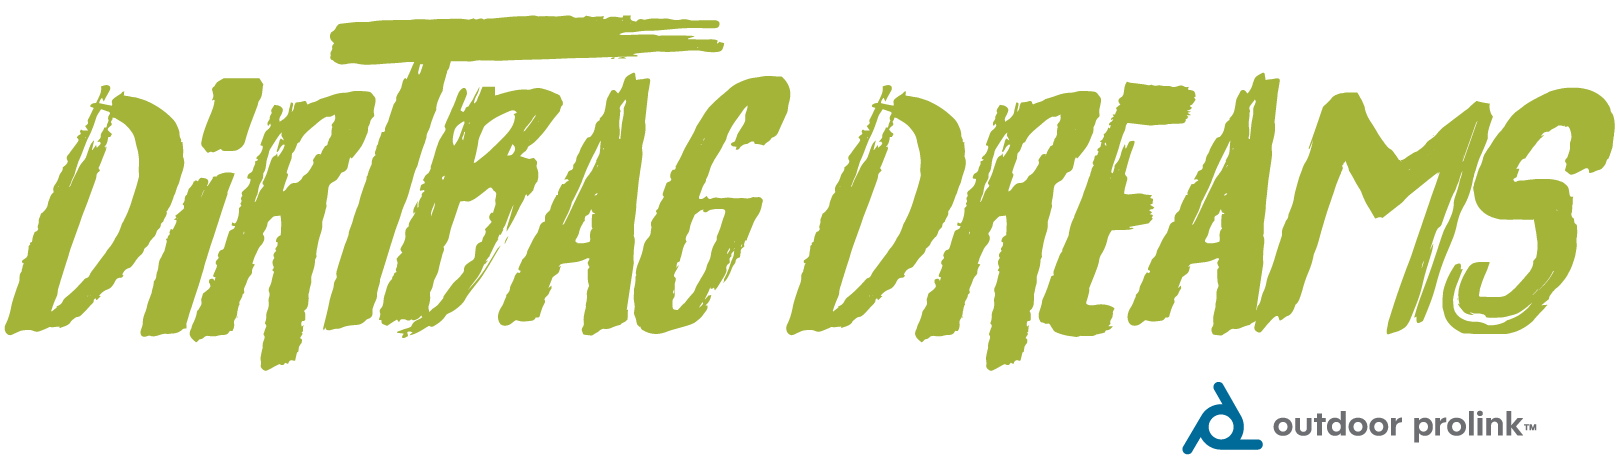 dirtbag-dreams-gear-reviews-logo